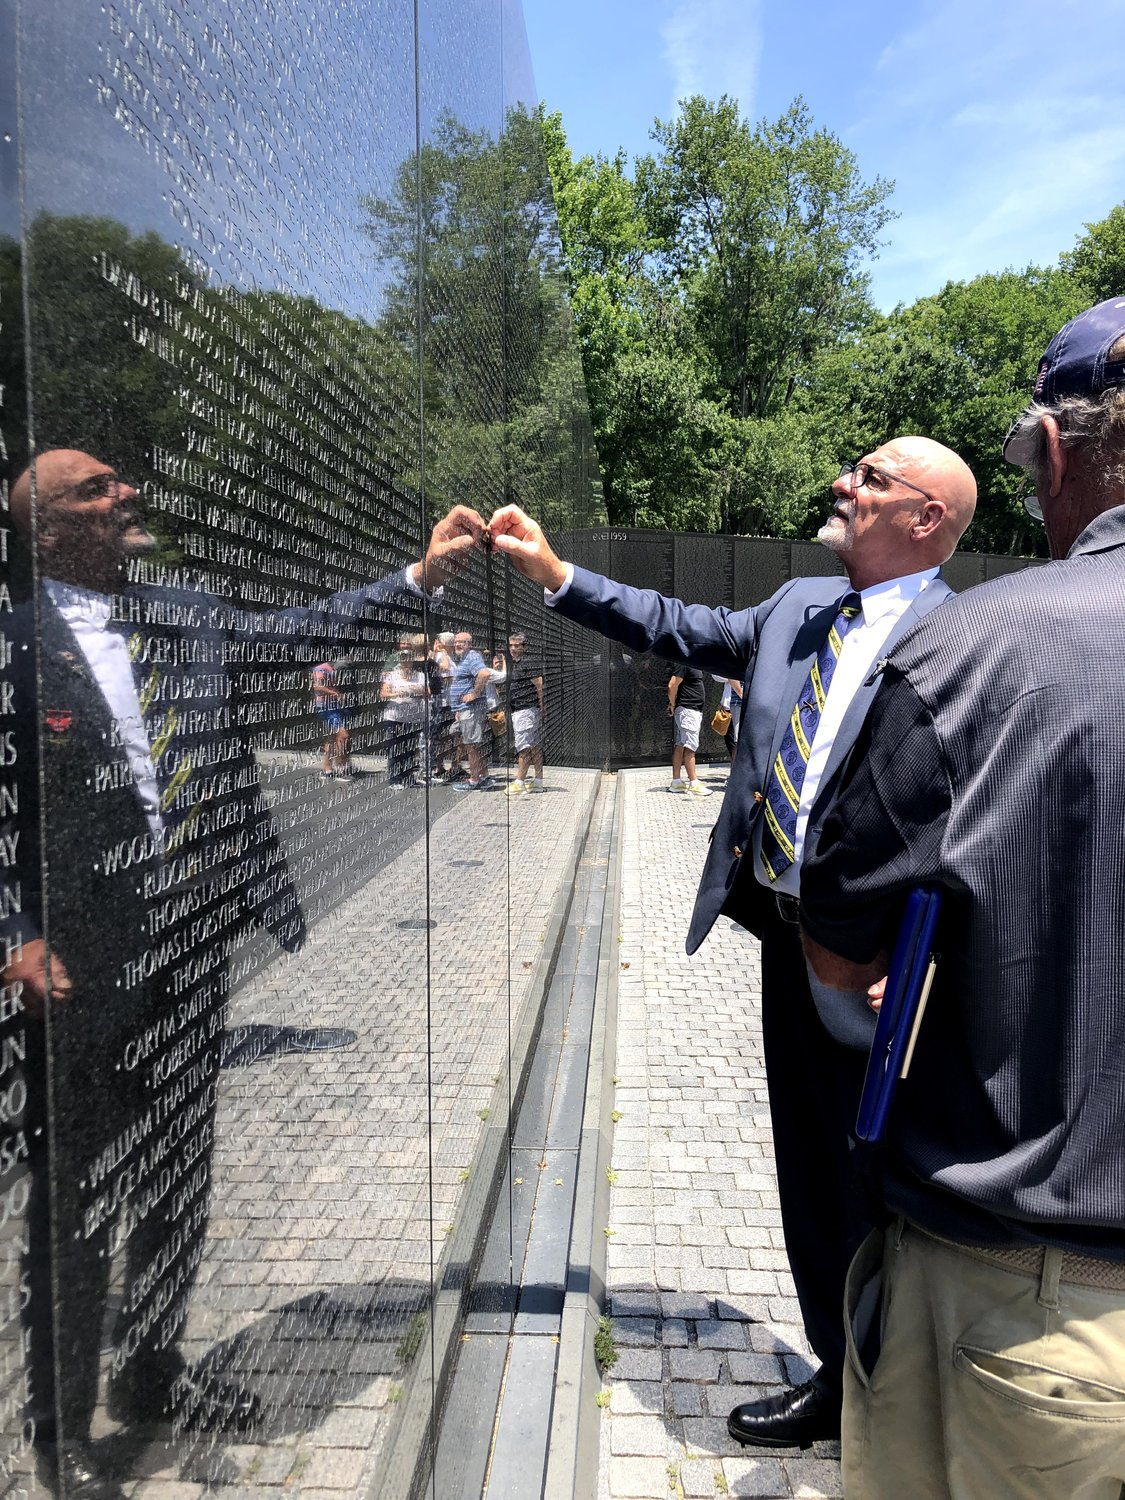 During his trip to Washington, Harold Jantz visited the Vietnam Veterans Memorial. He found the name of his comrade Lynwood Thornton, who was killed in action the night Jantz saved his platoon. Jantz, ordered to leave Thornton's body on the battlefield, refused.